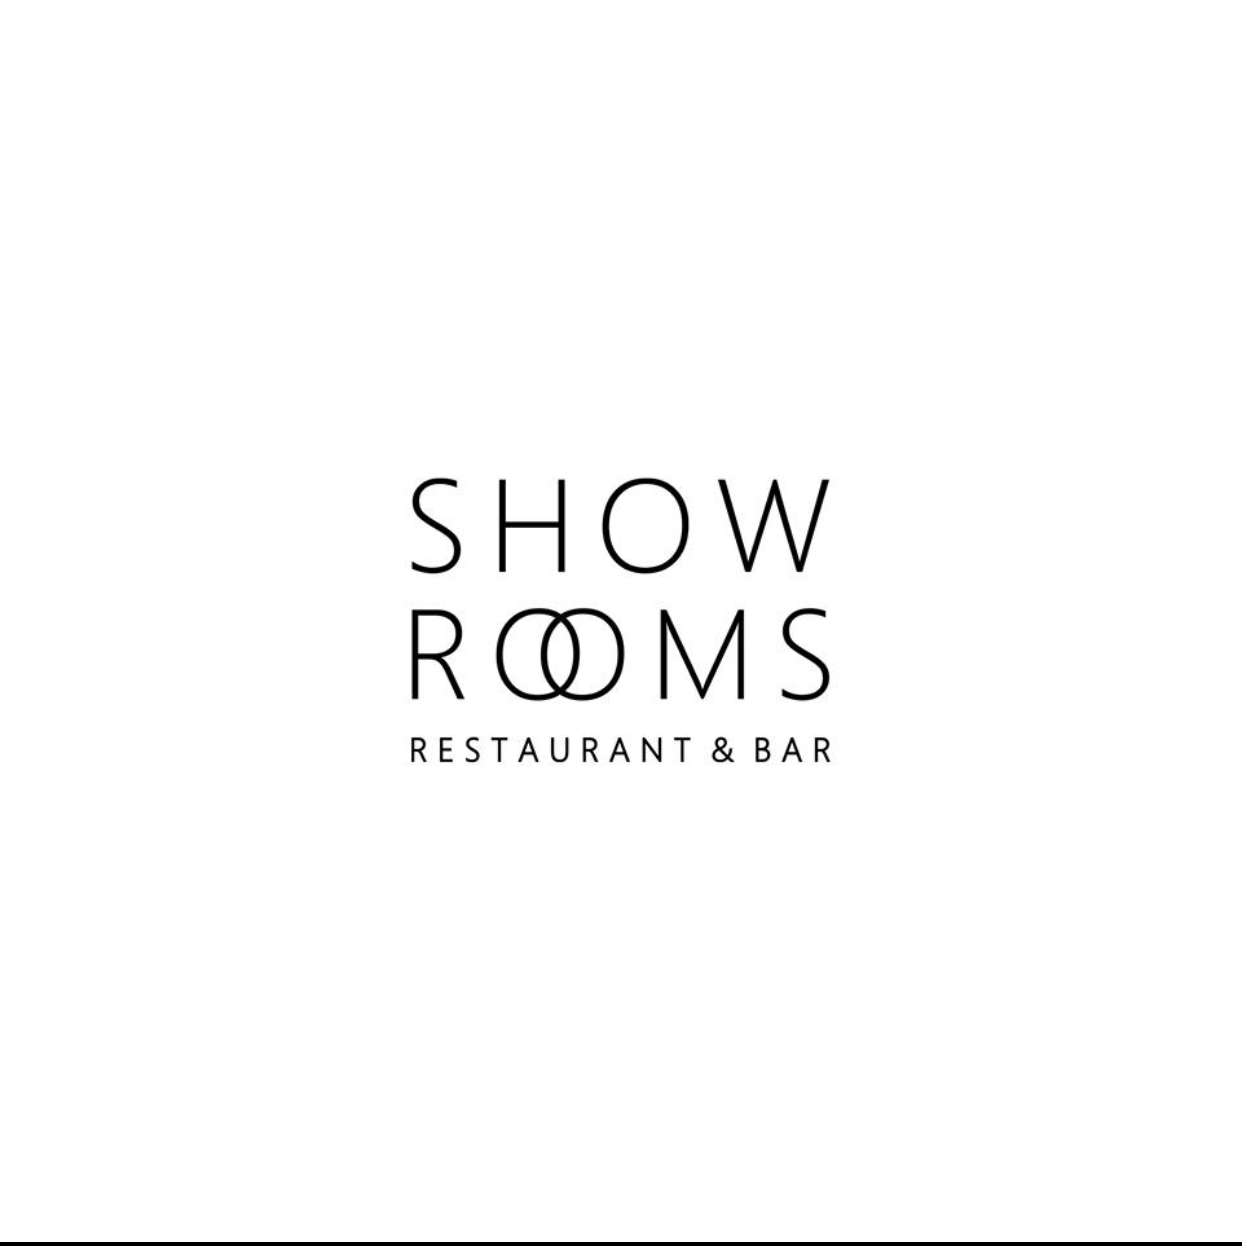 Show Rooms